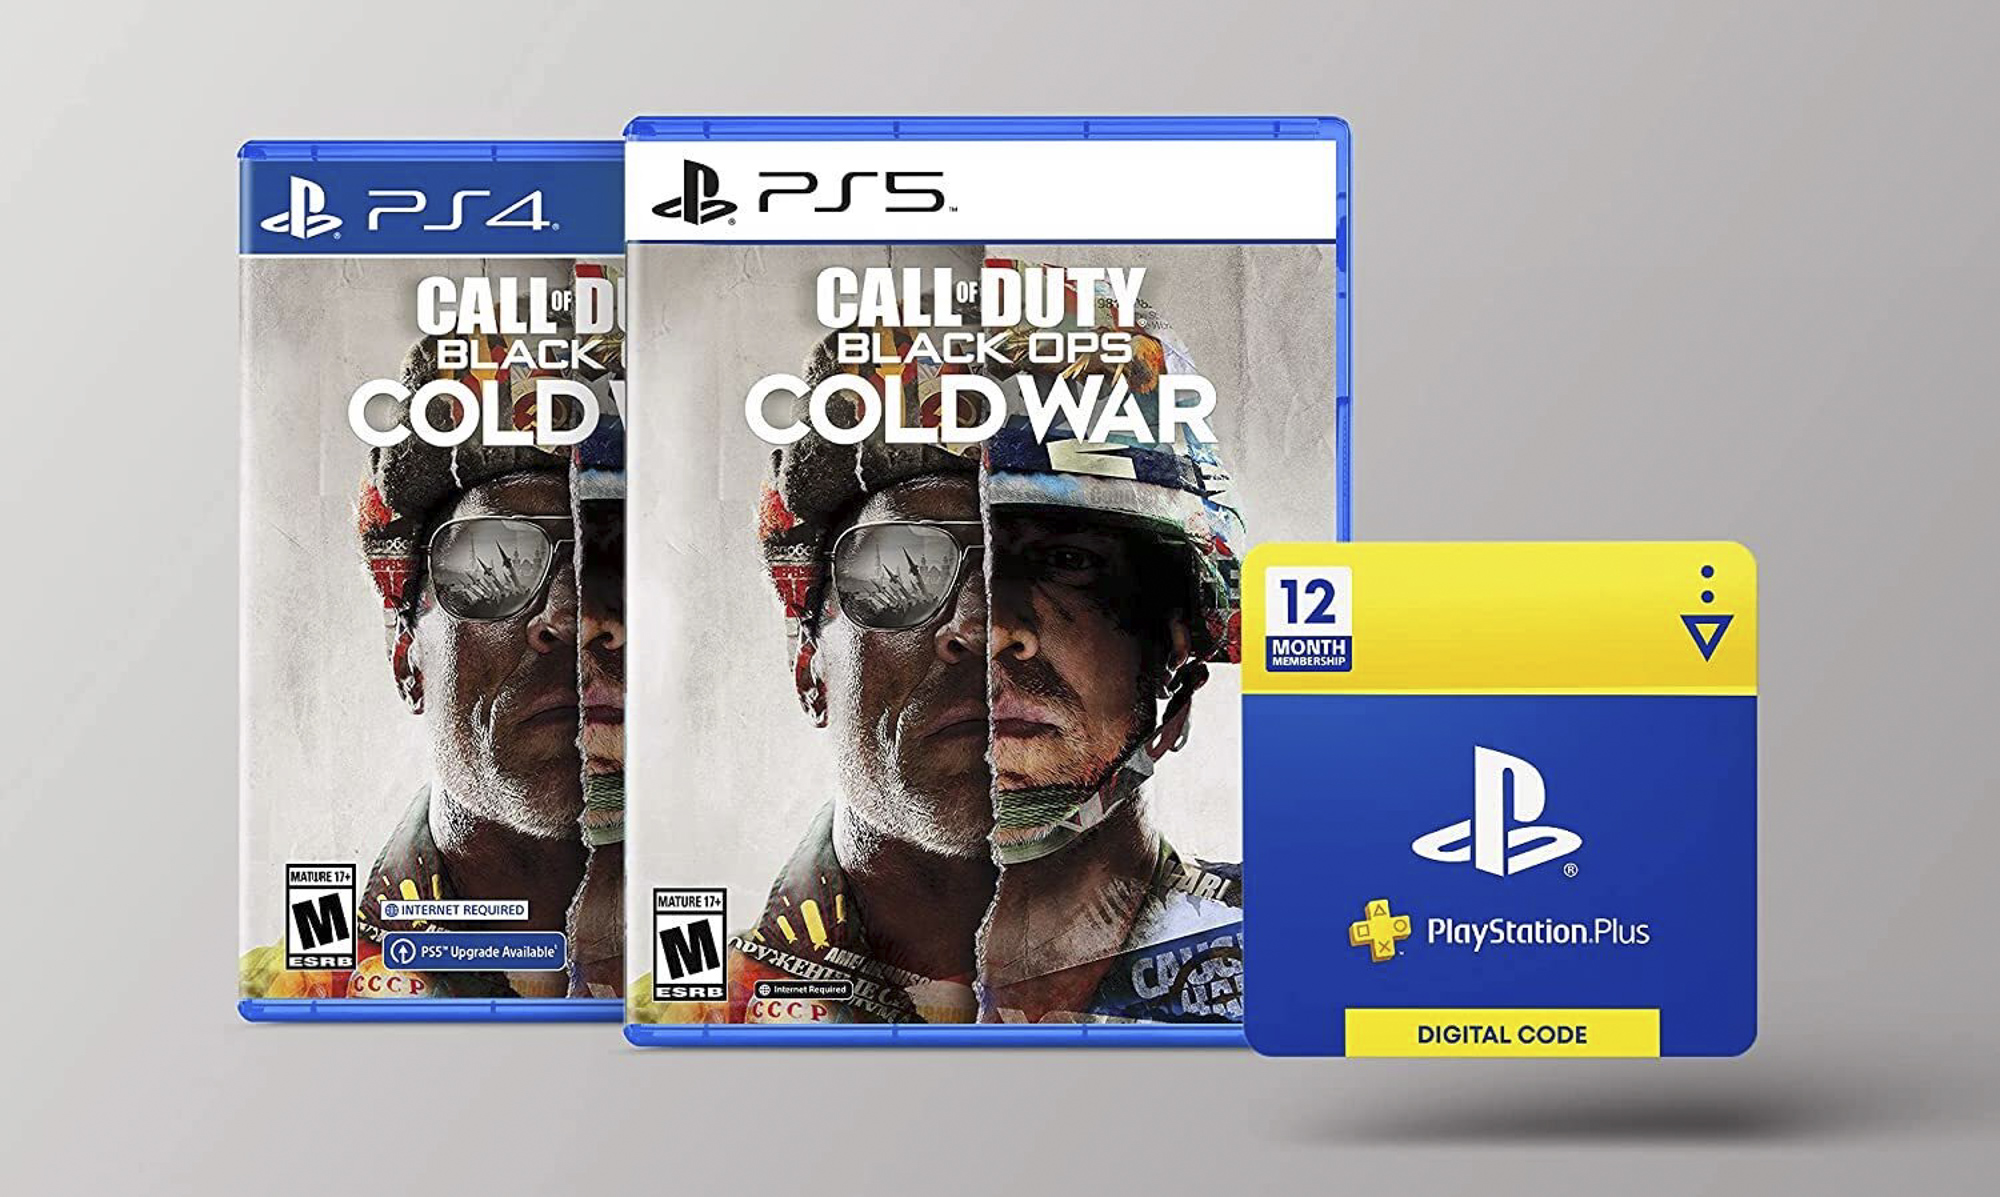 PlayStation Plus and PlayStation Now